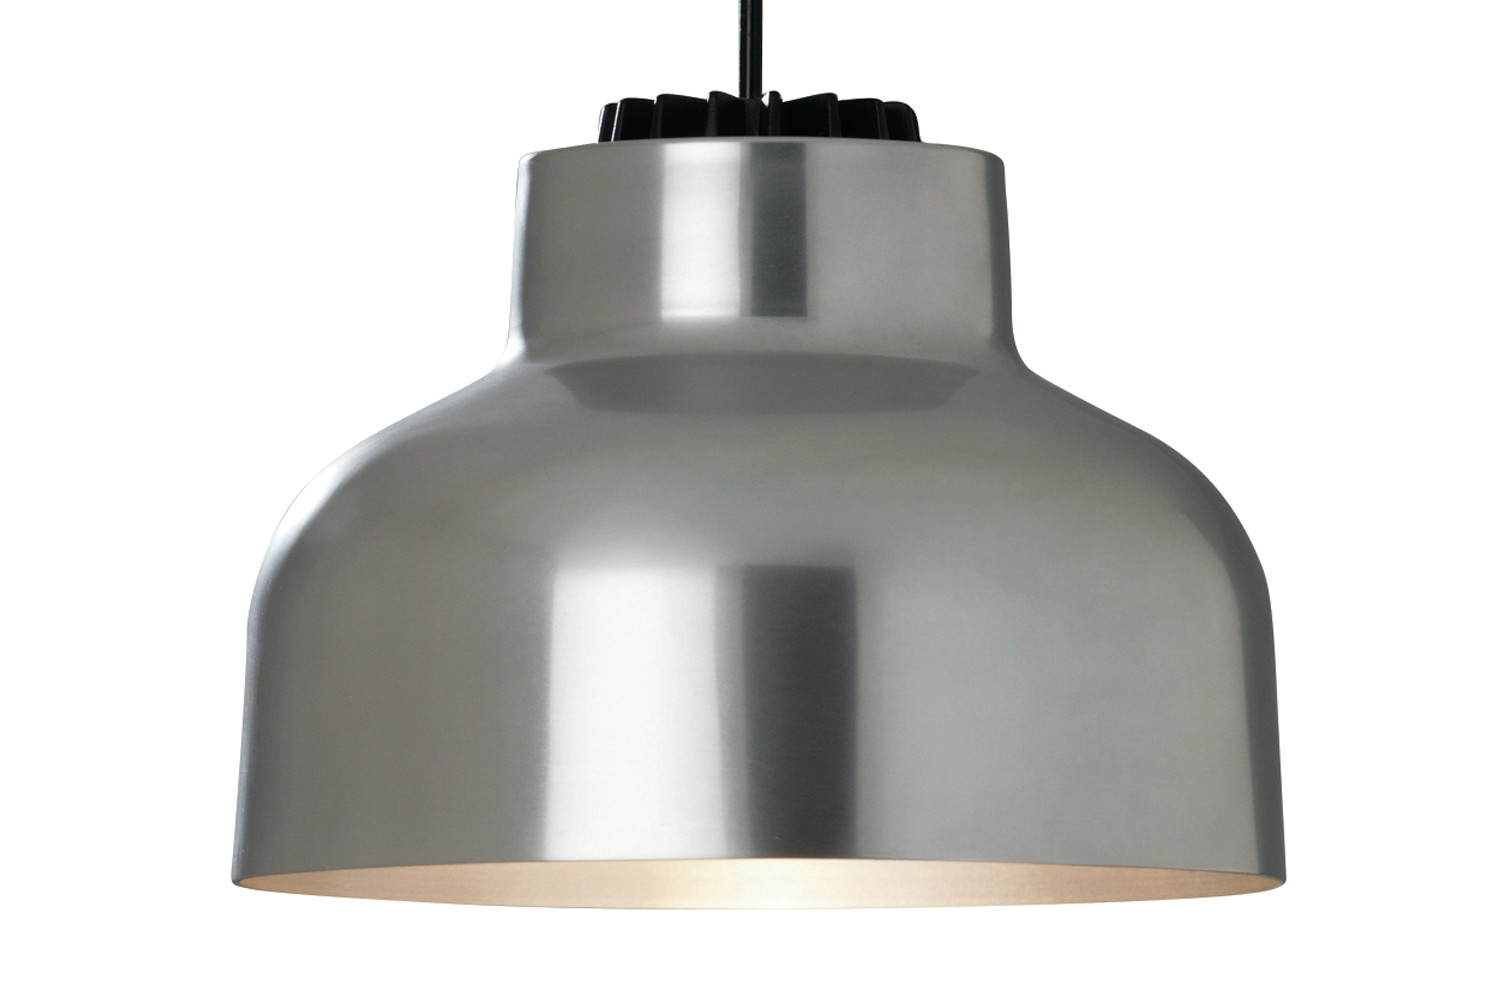 M64 Pendant Light White - Not Dimmable, Polished aluminium, 800